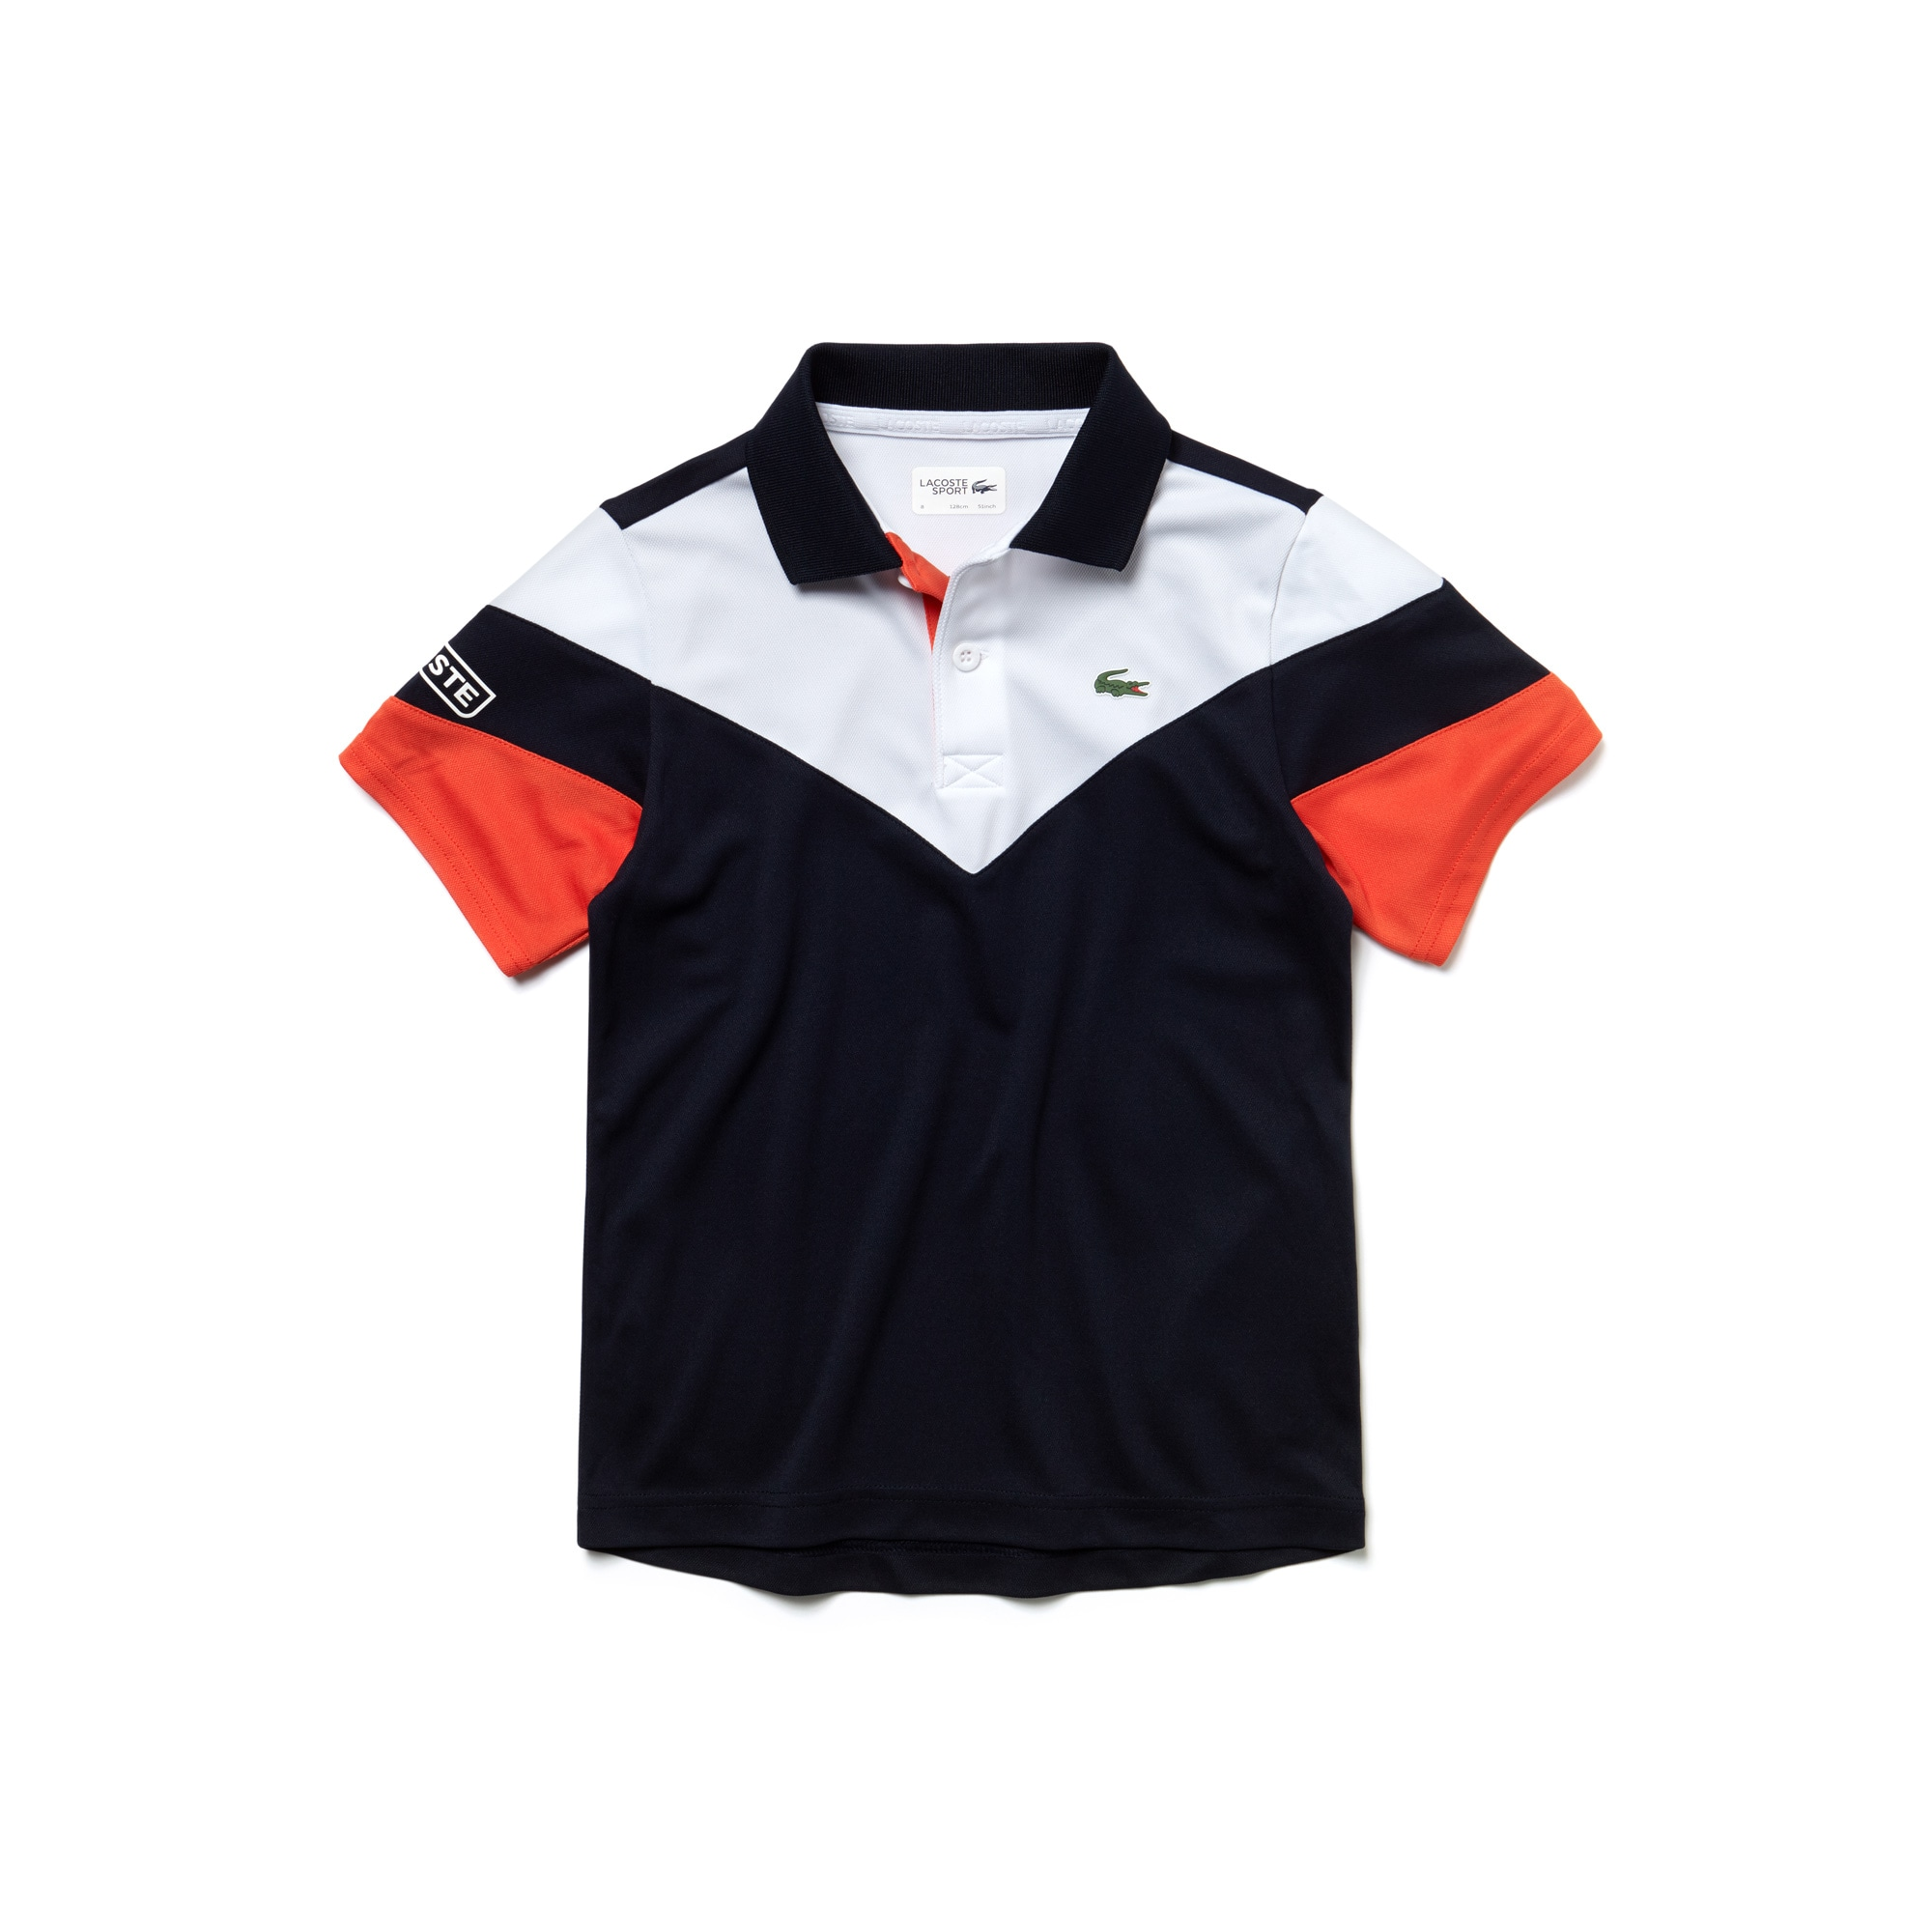 Jungen-Funktions-Polo mit Colorblocks LACOSTE SPORT TENNIS